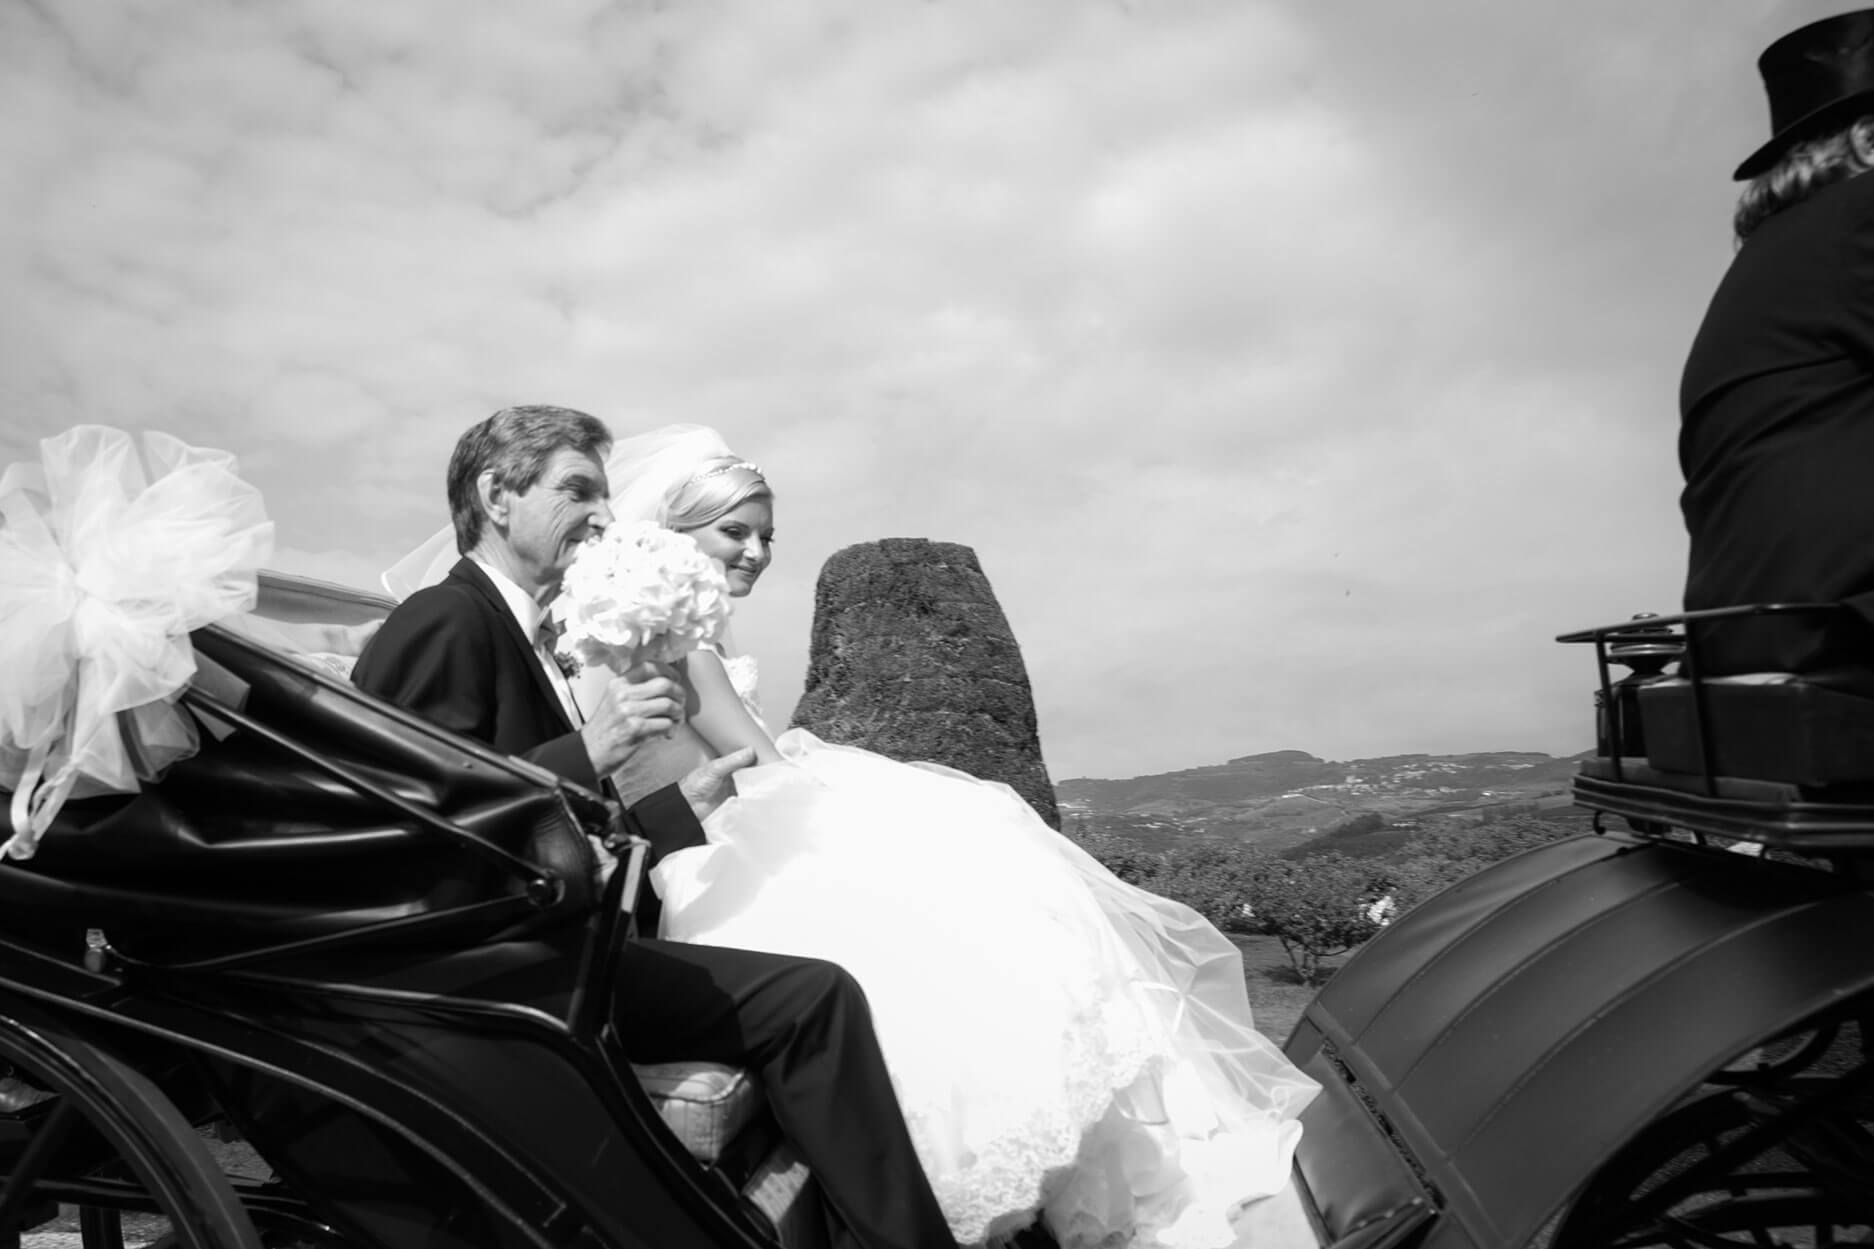 Francesca-Ferrati-wedding-photographer-Verona-Svetlana-Gianluigi13